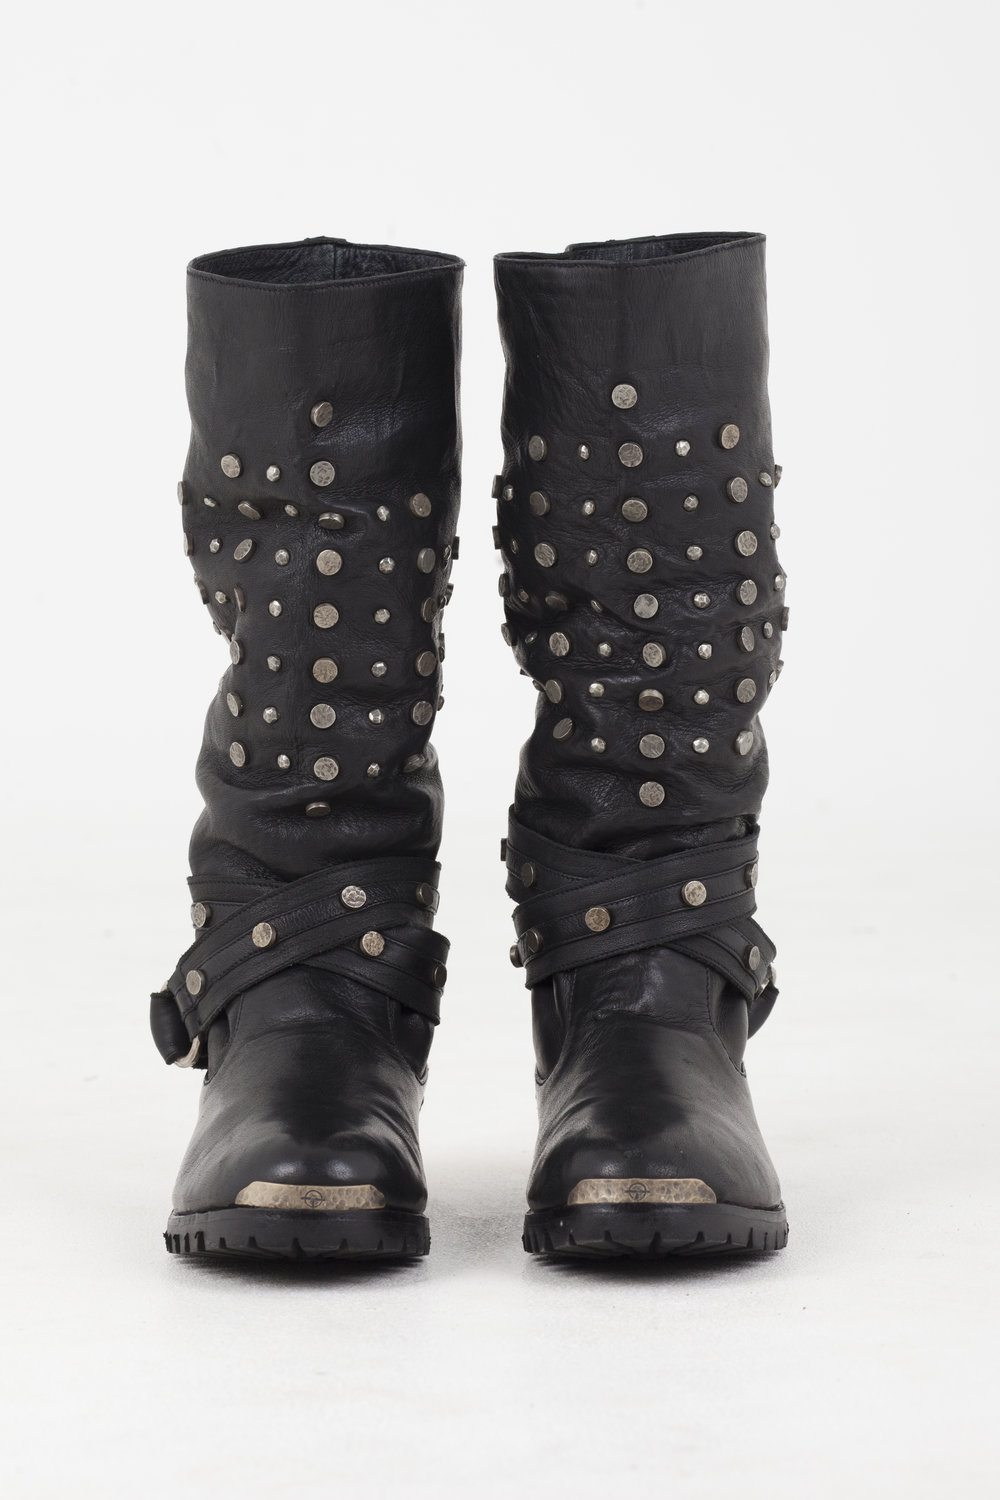 agoraphobia-collective-defiant-disorder-over-high-biker-boots